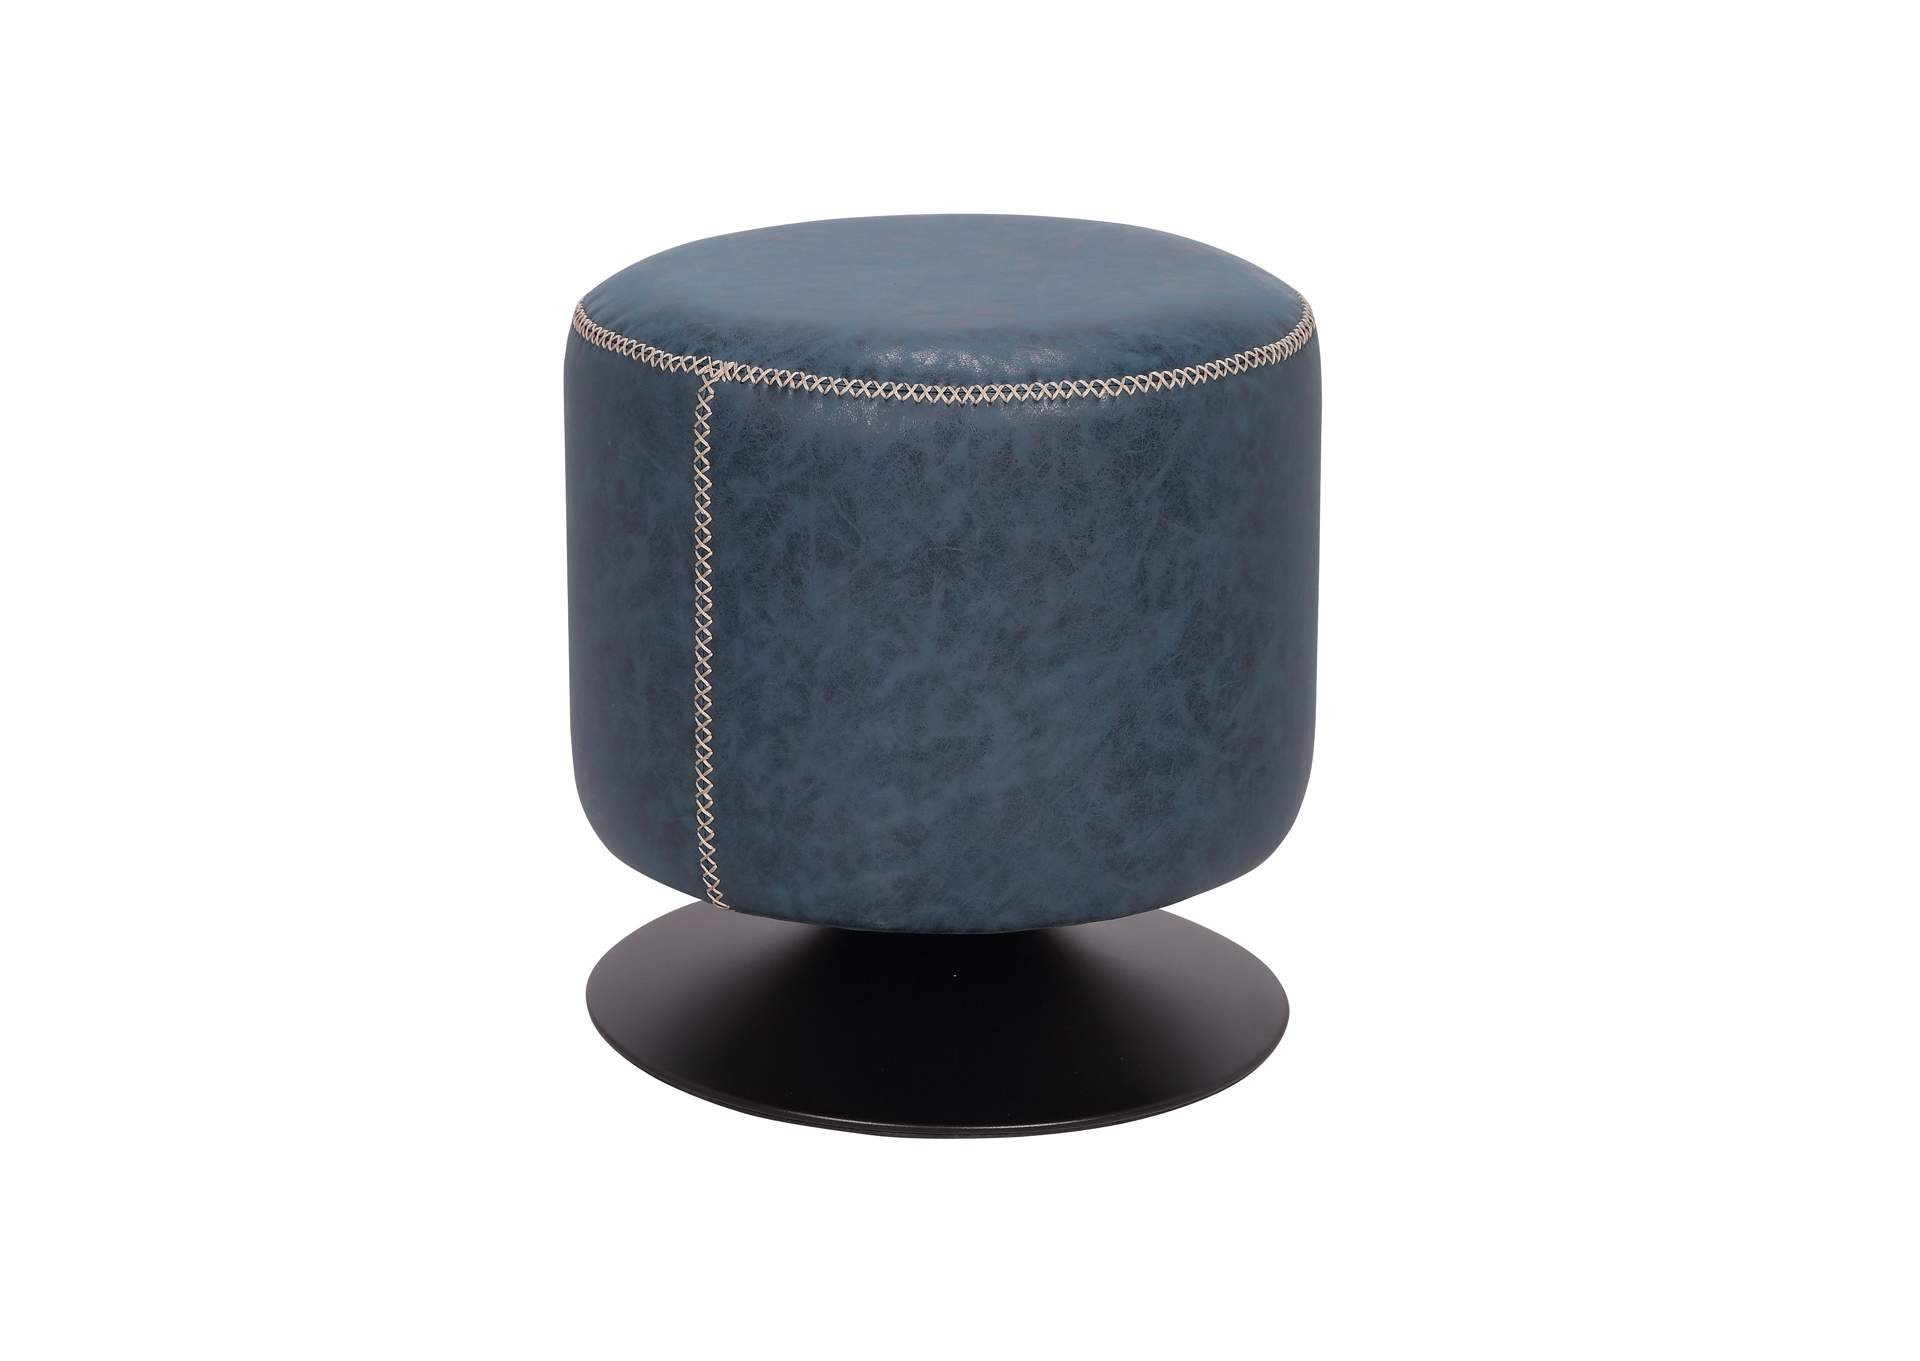 Black Round Vintage Upholstered Ottoman,Chintaly Imports